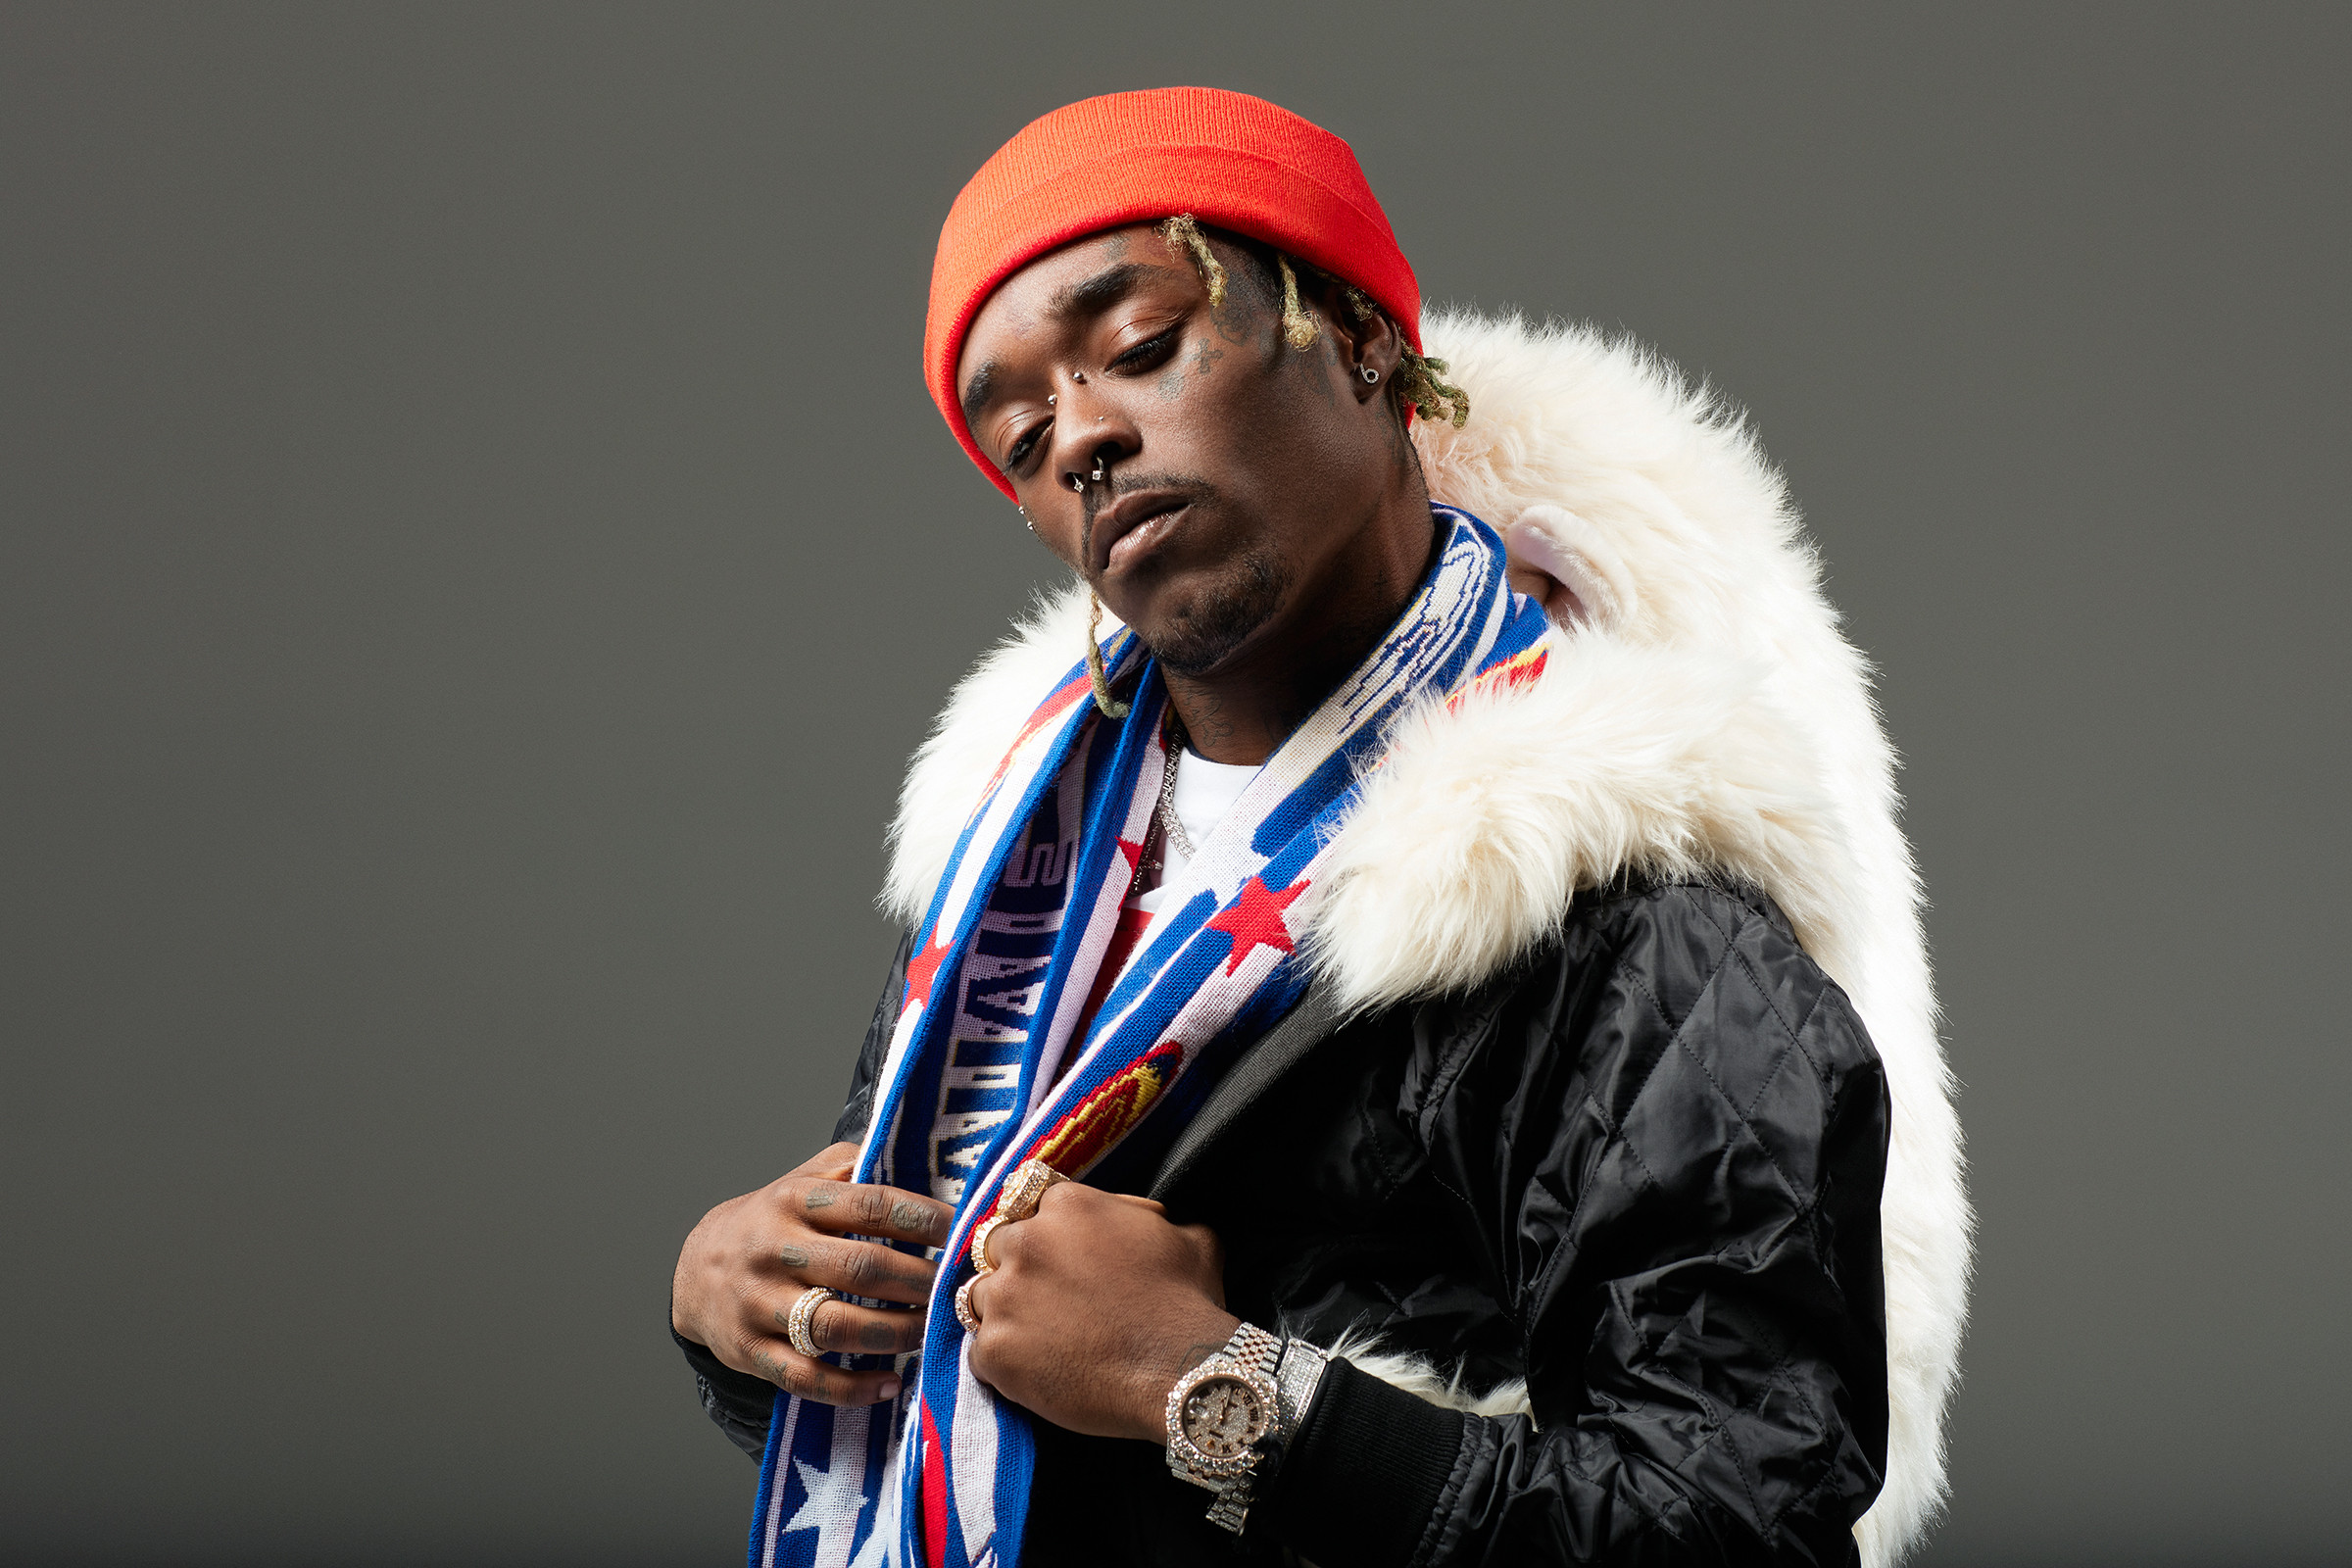 Lil Uzi Vert Hd Wallpapers Story Behind His Name Lovelytab